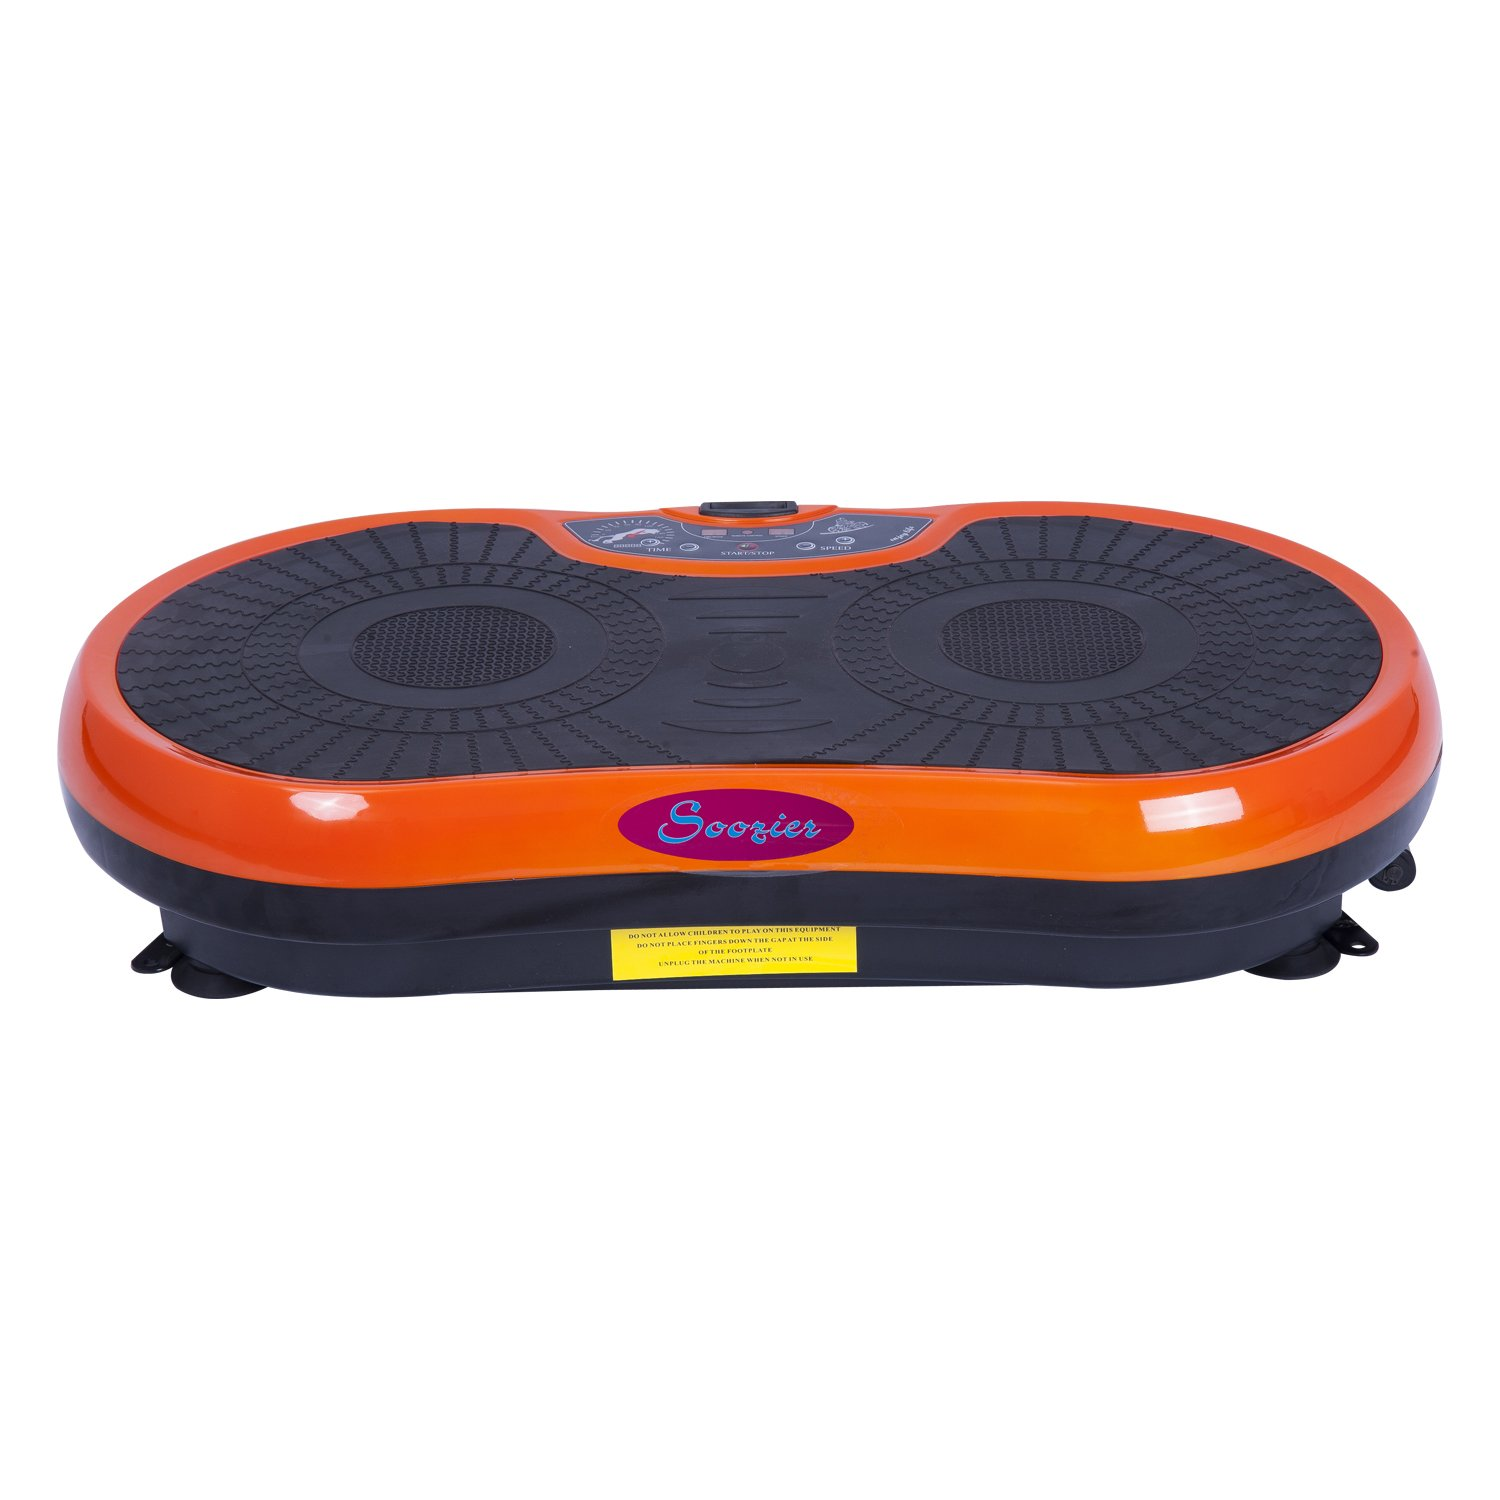 Soozier 200W Compact Portable Vibration Machine with LCD Display